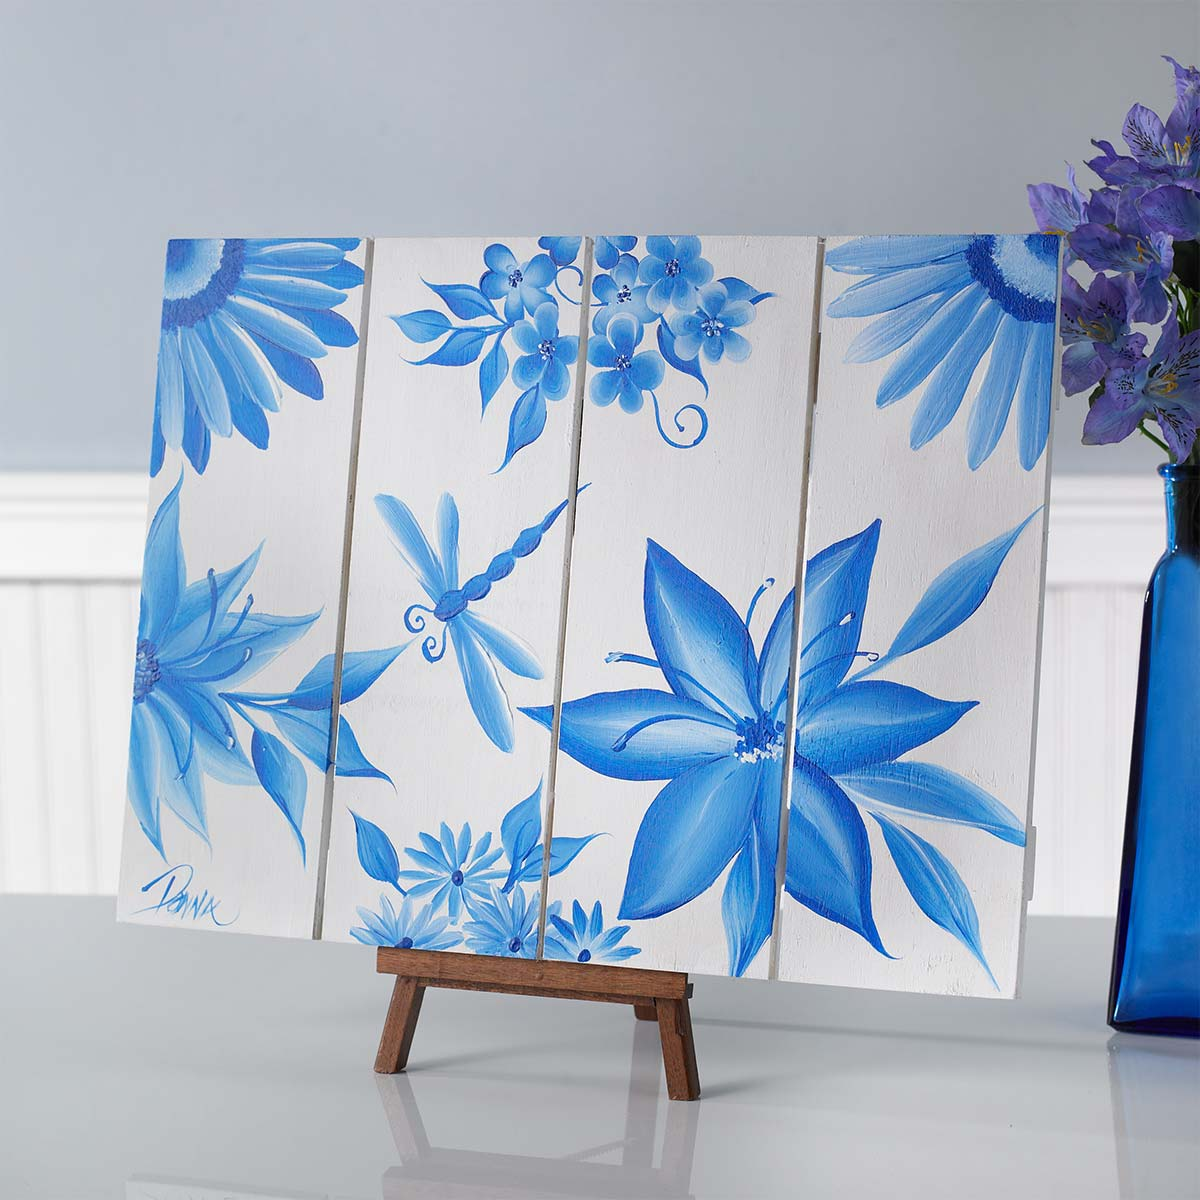 Monochromatic Floral Wall Art Project Plaid Online